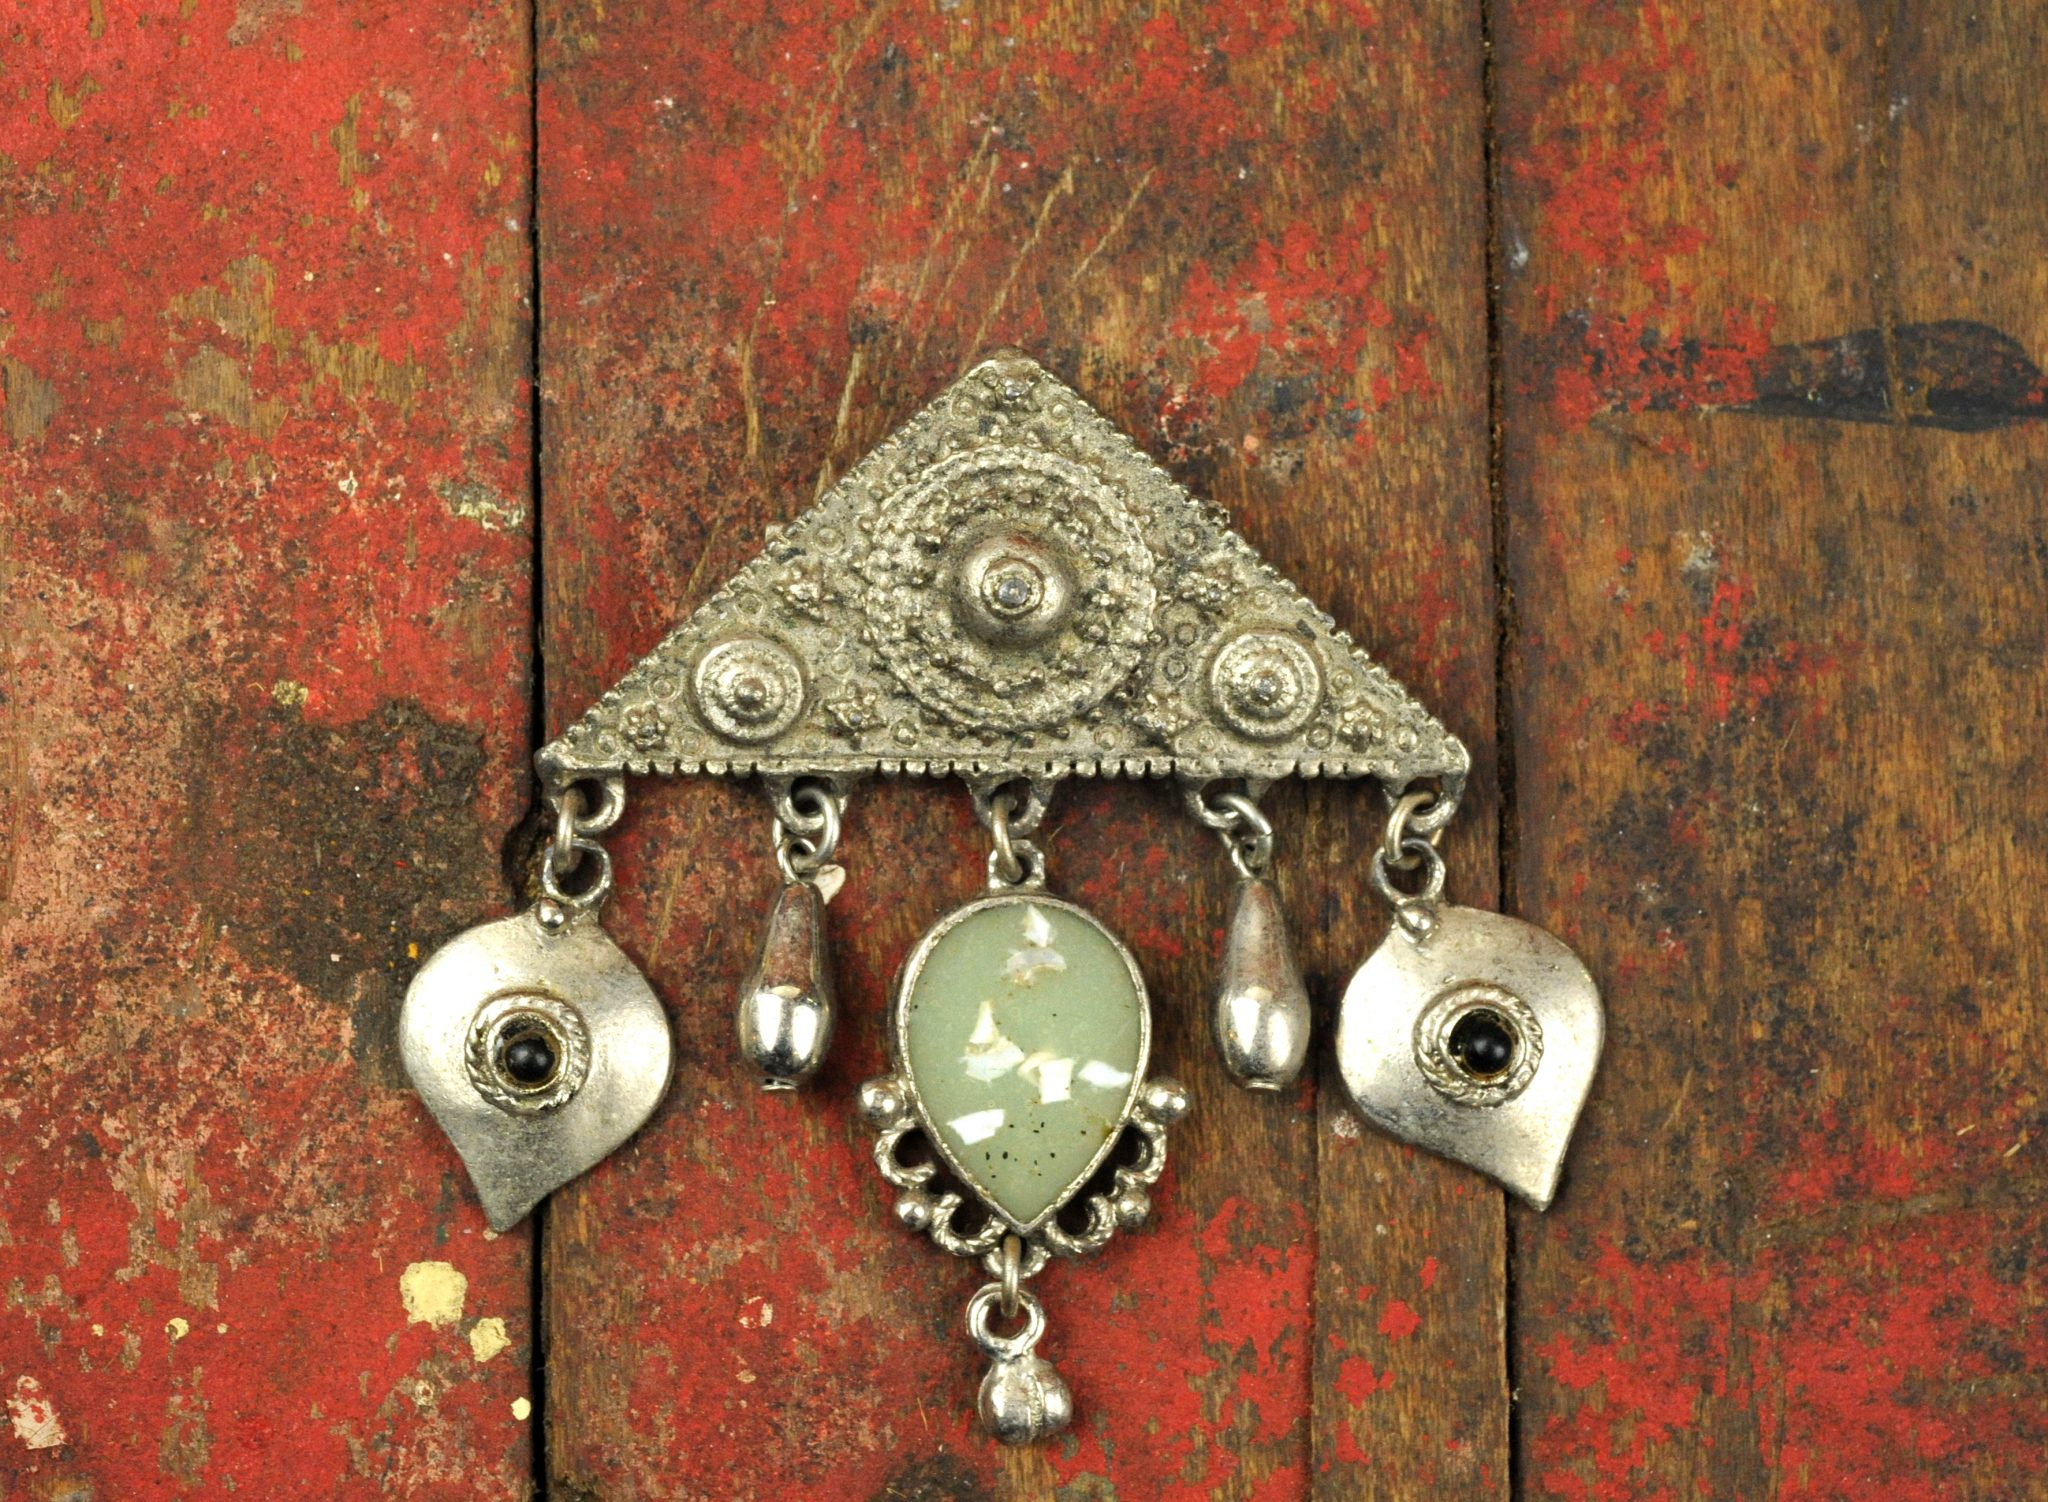 Silver Tone Triangle Brooch with Tassels